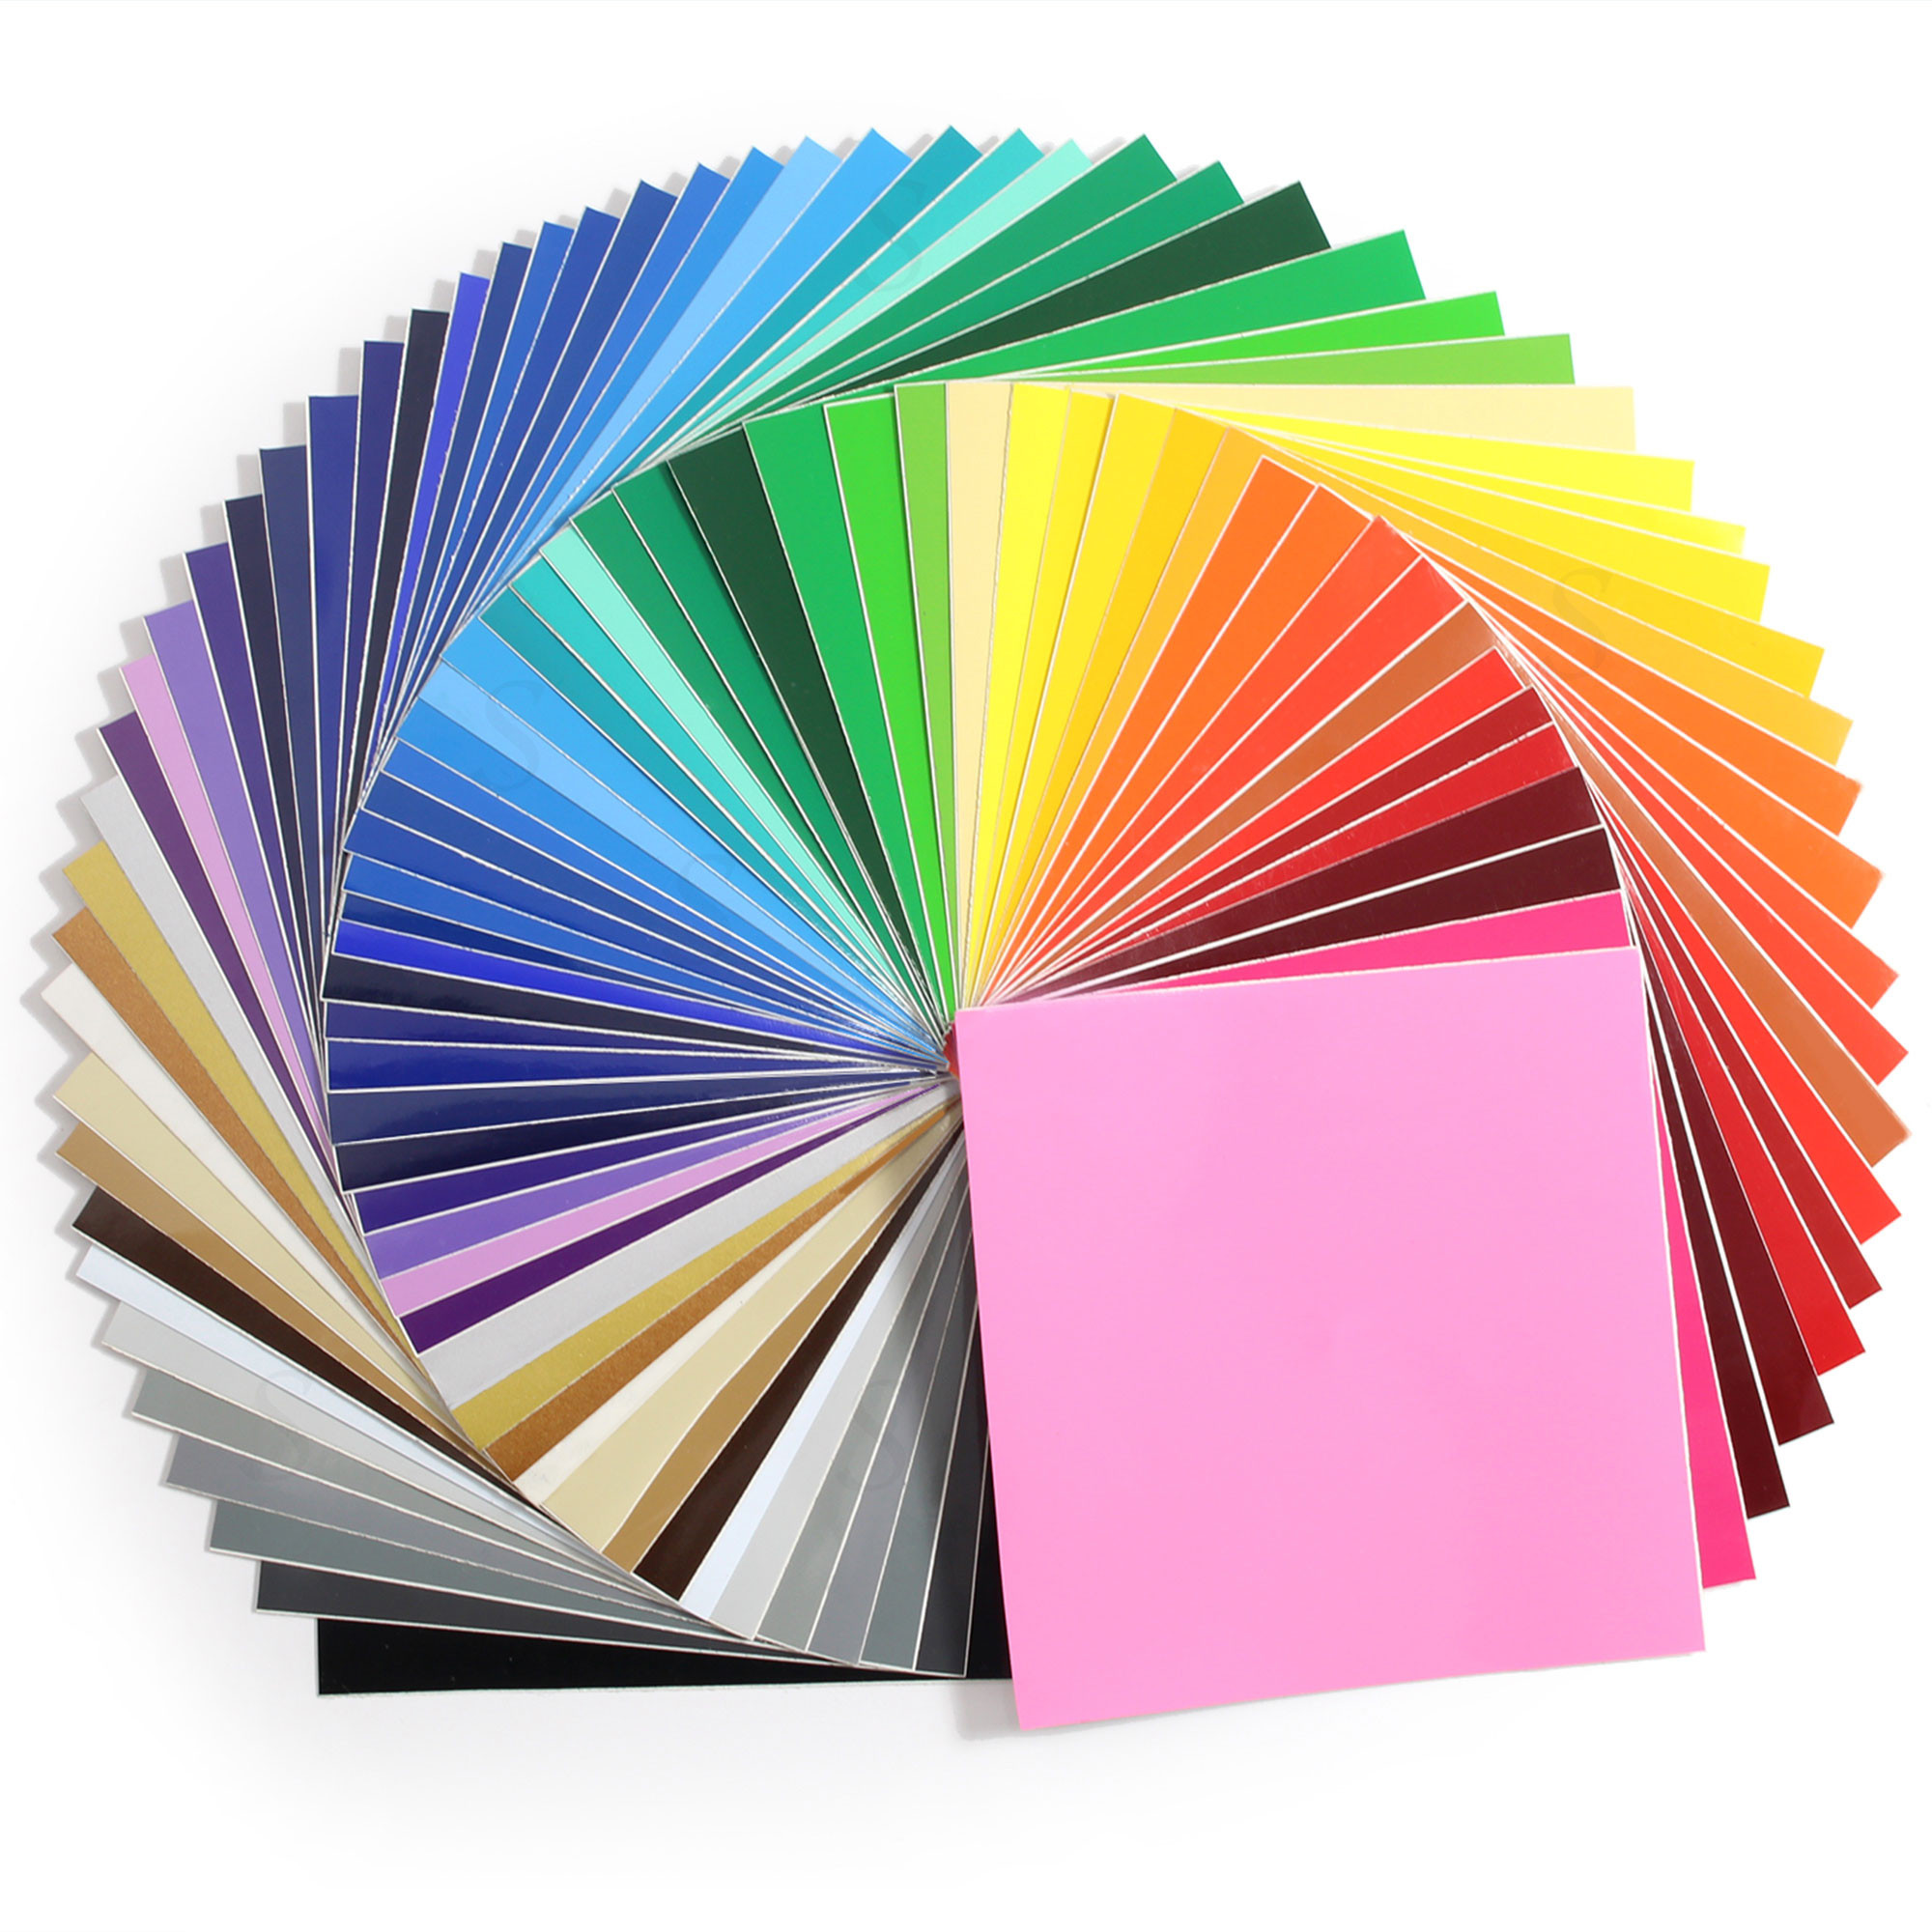 Oracal 651 Glossy Vinyl 12 x 12 - 61 Assorted Colors